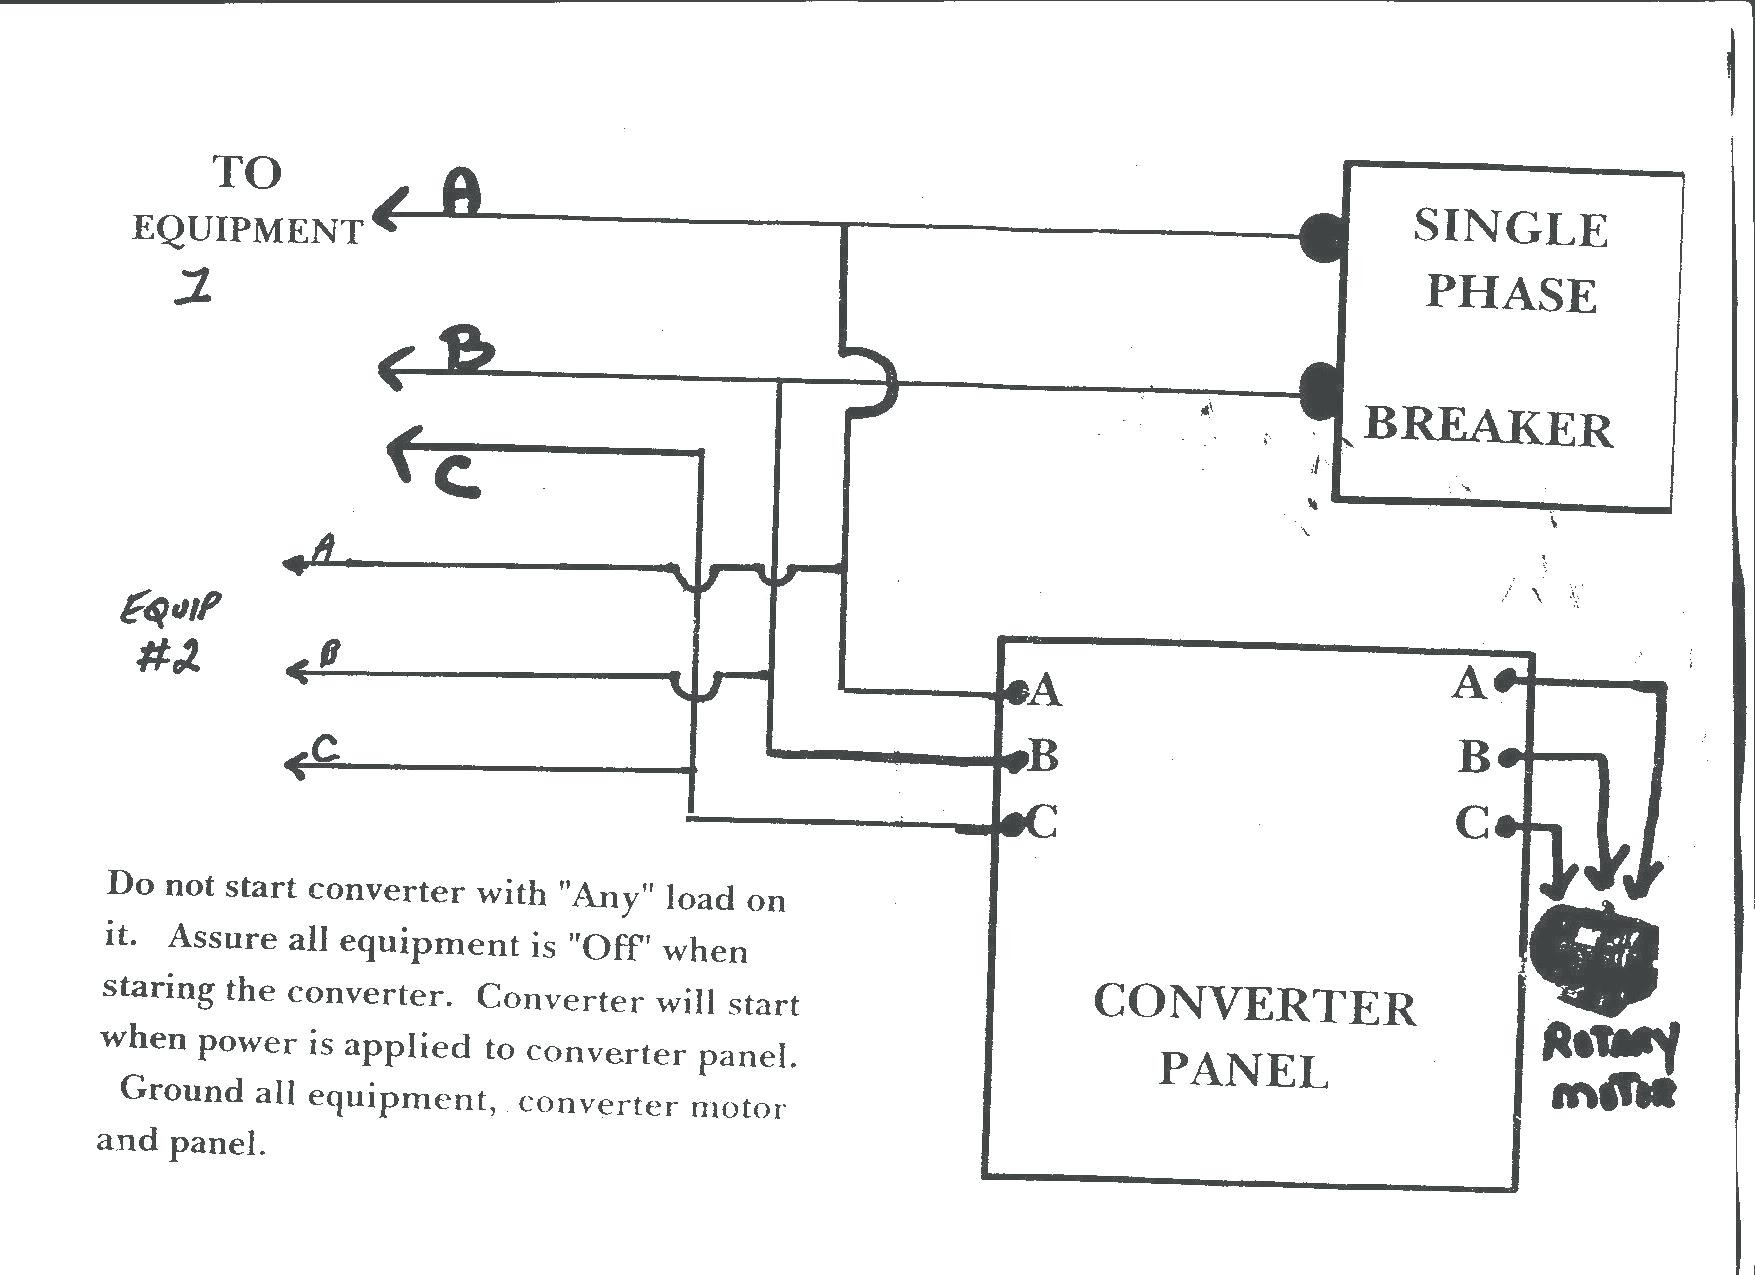 Three Phase Converter Wiring Diagram Ronk Phase Converter Wiring Diagram 2 Lenito Of Three Phase Converter Wiring Diagram